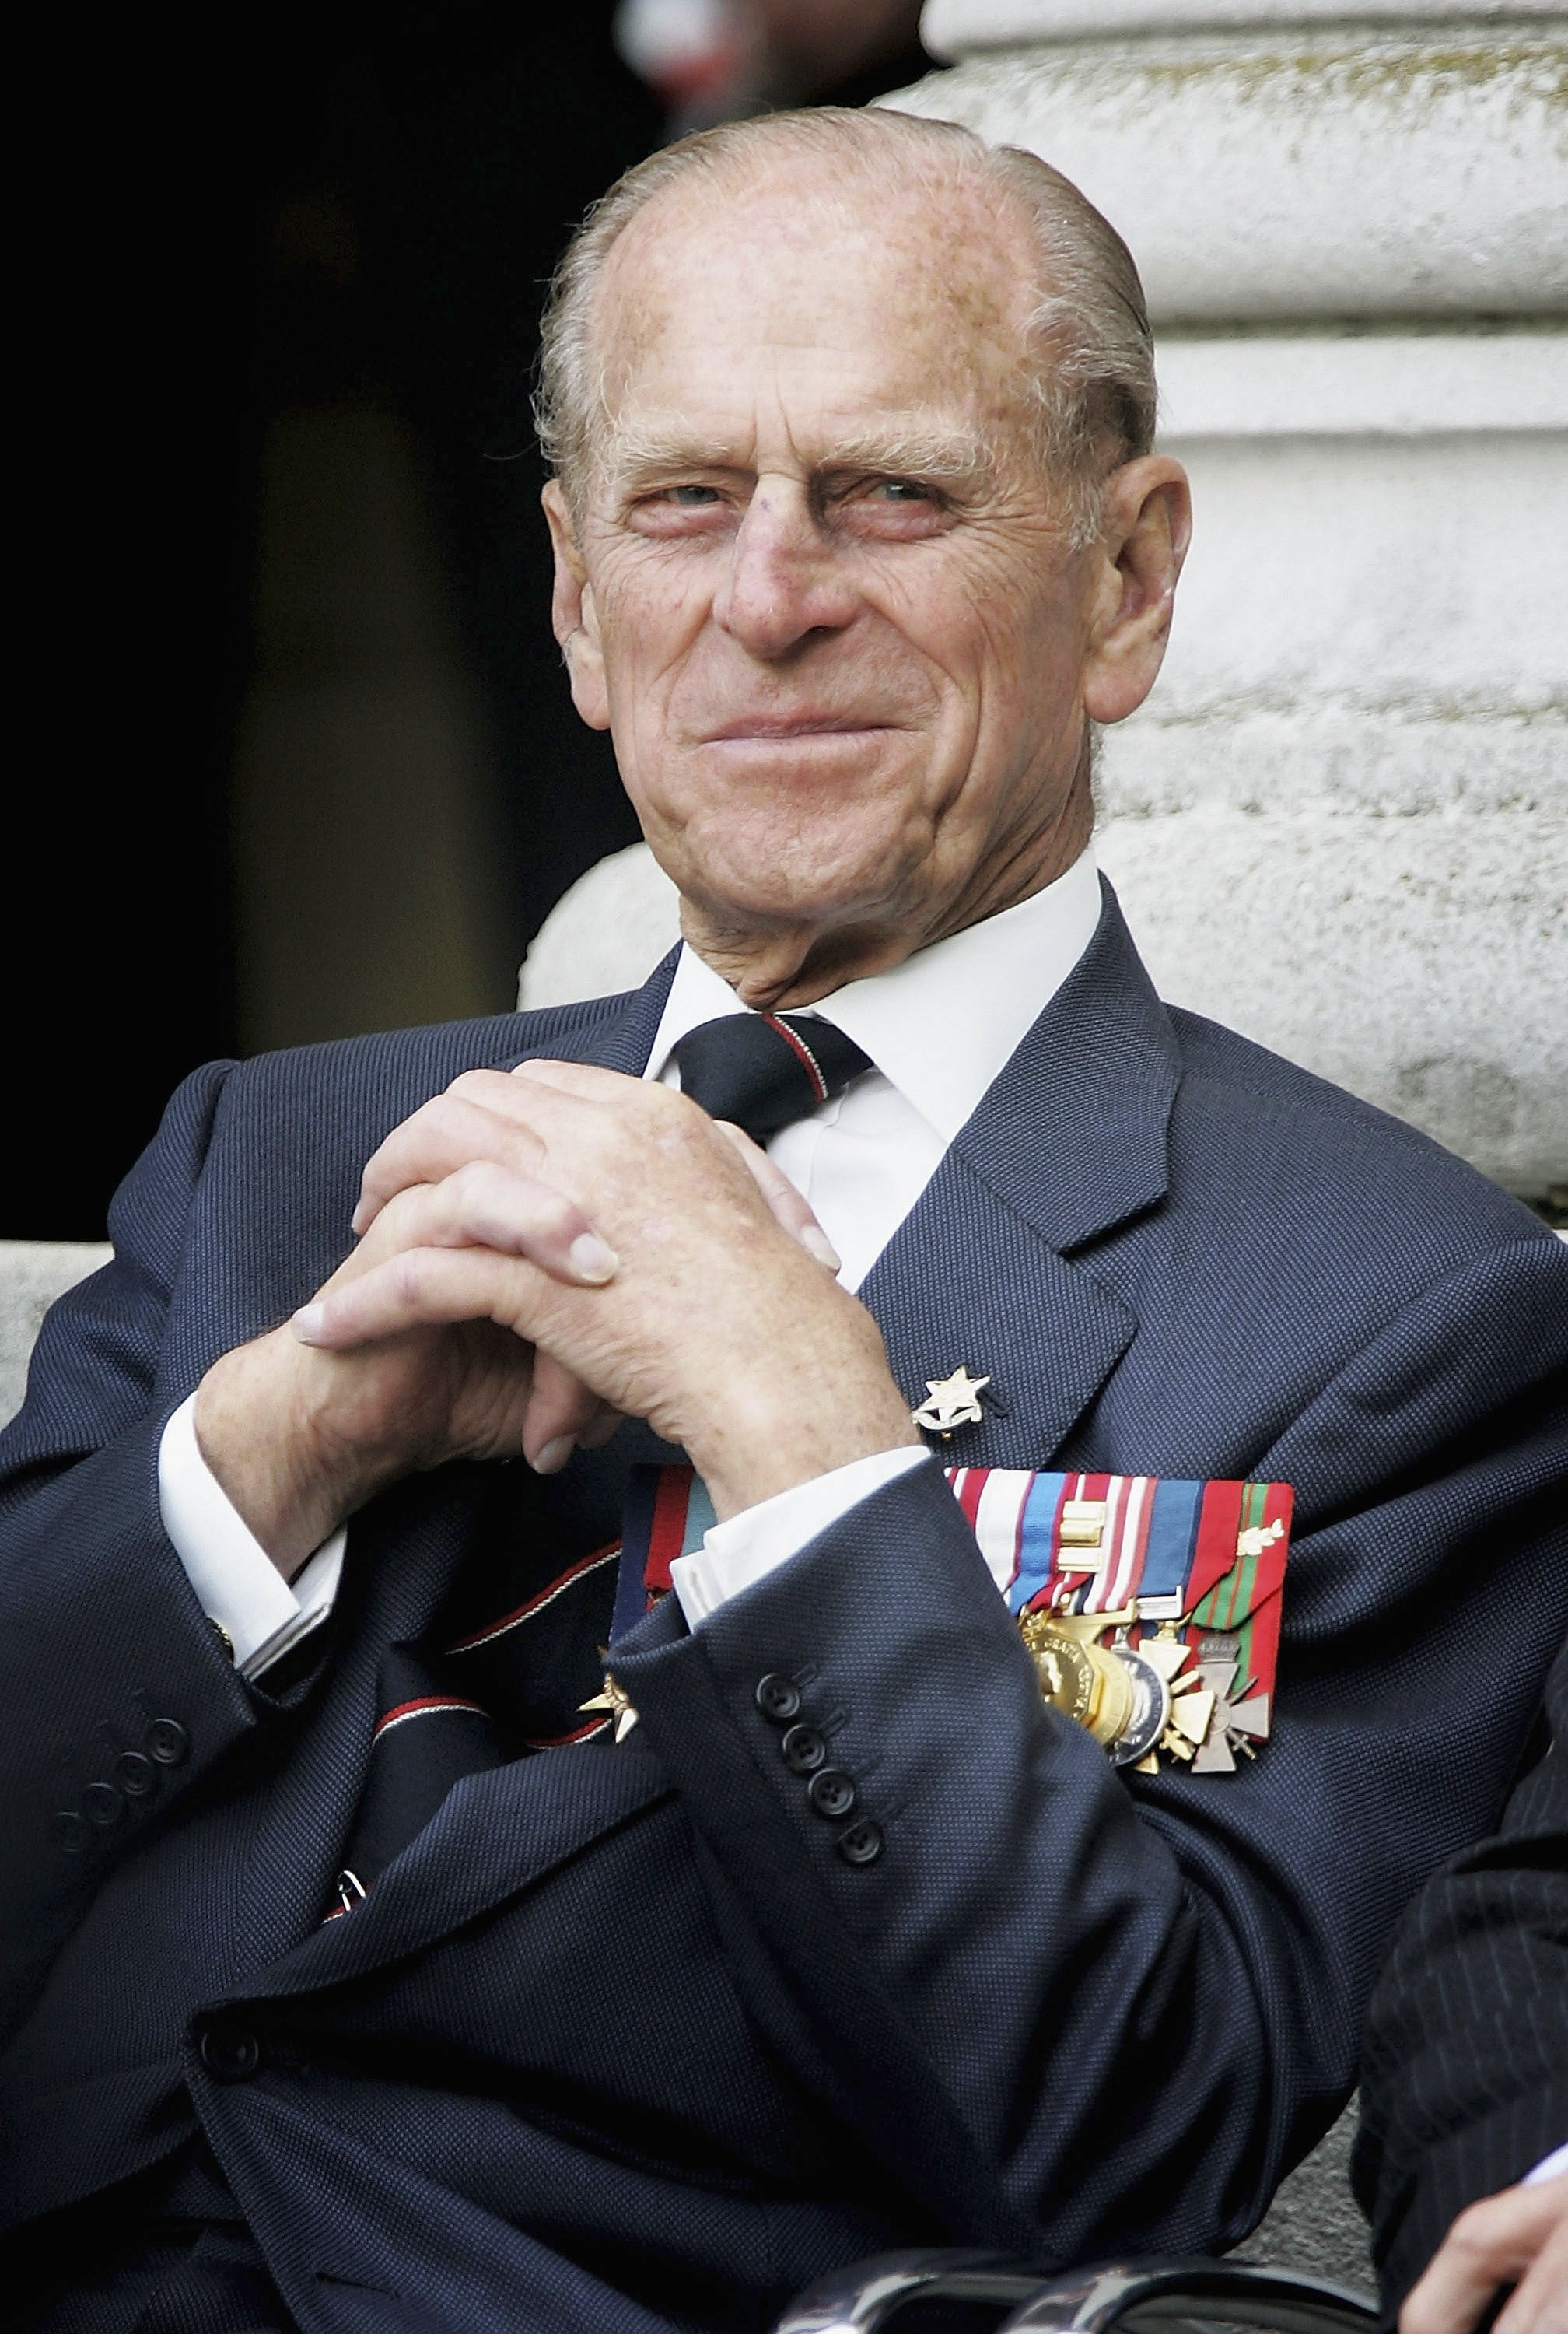 LONDON ? AUGUST 15: HRH The Duke of Edinburgh watches the Gurka band march past as World War II veterans gather to commemorate the 60th anniversary of VJ Day which marked the end of the war,  at the Imperial War Museum on  August 15, 2005 in London, England.  (Photo by Chris Jackson/Getty Images)